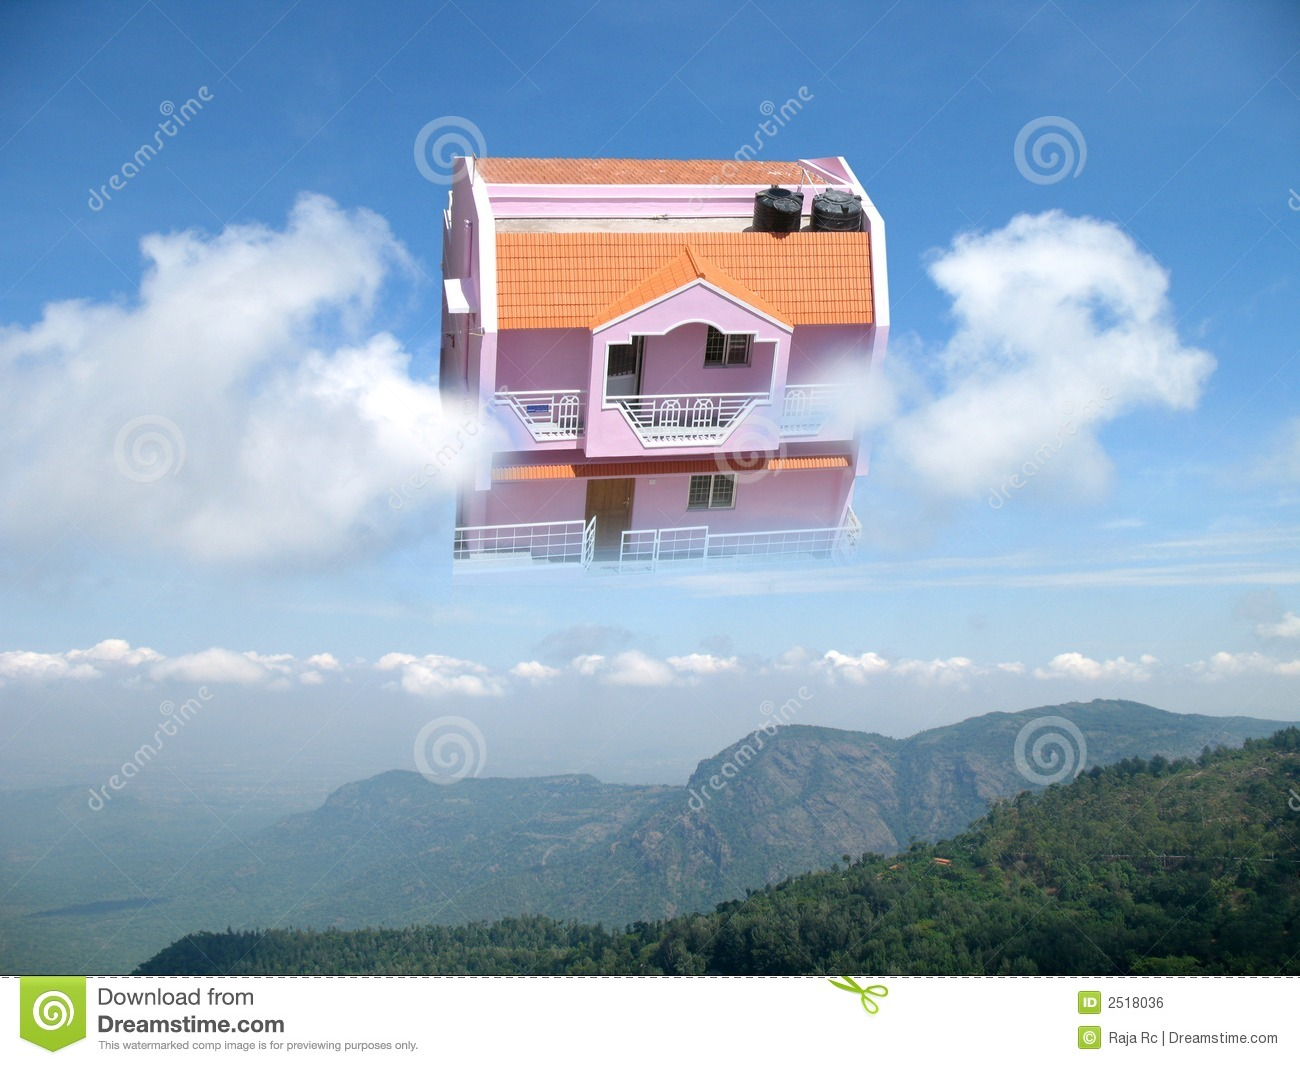 Dream House Royalty Free Stock Image Image 2518036